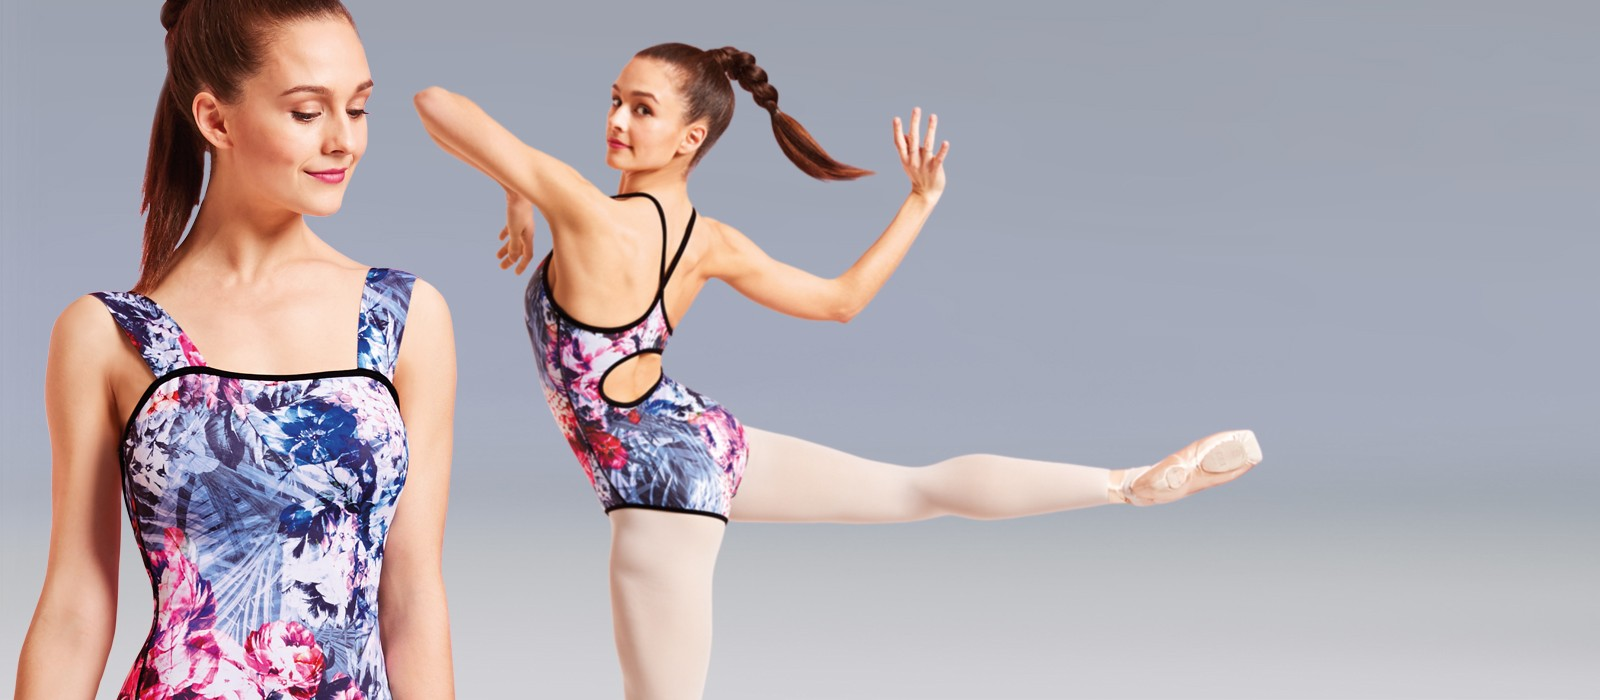 image - Reversible rose & peony printed leotards.